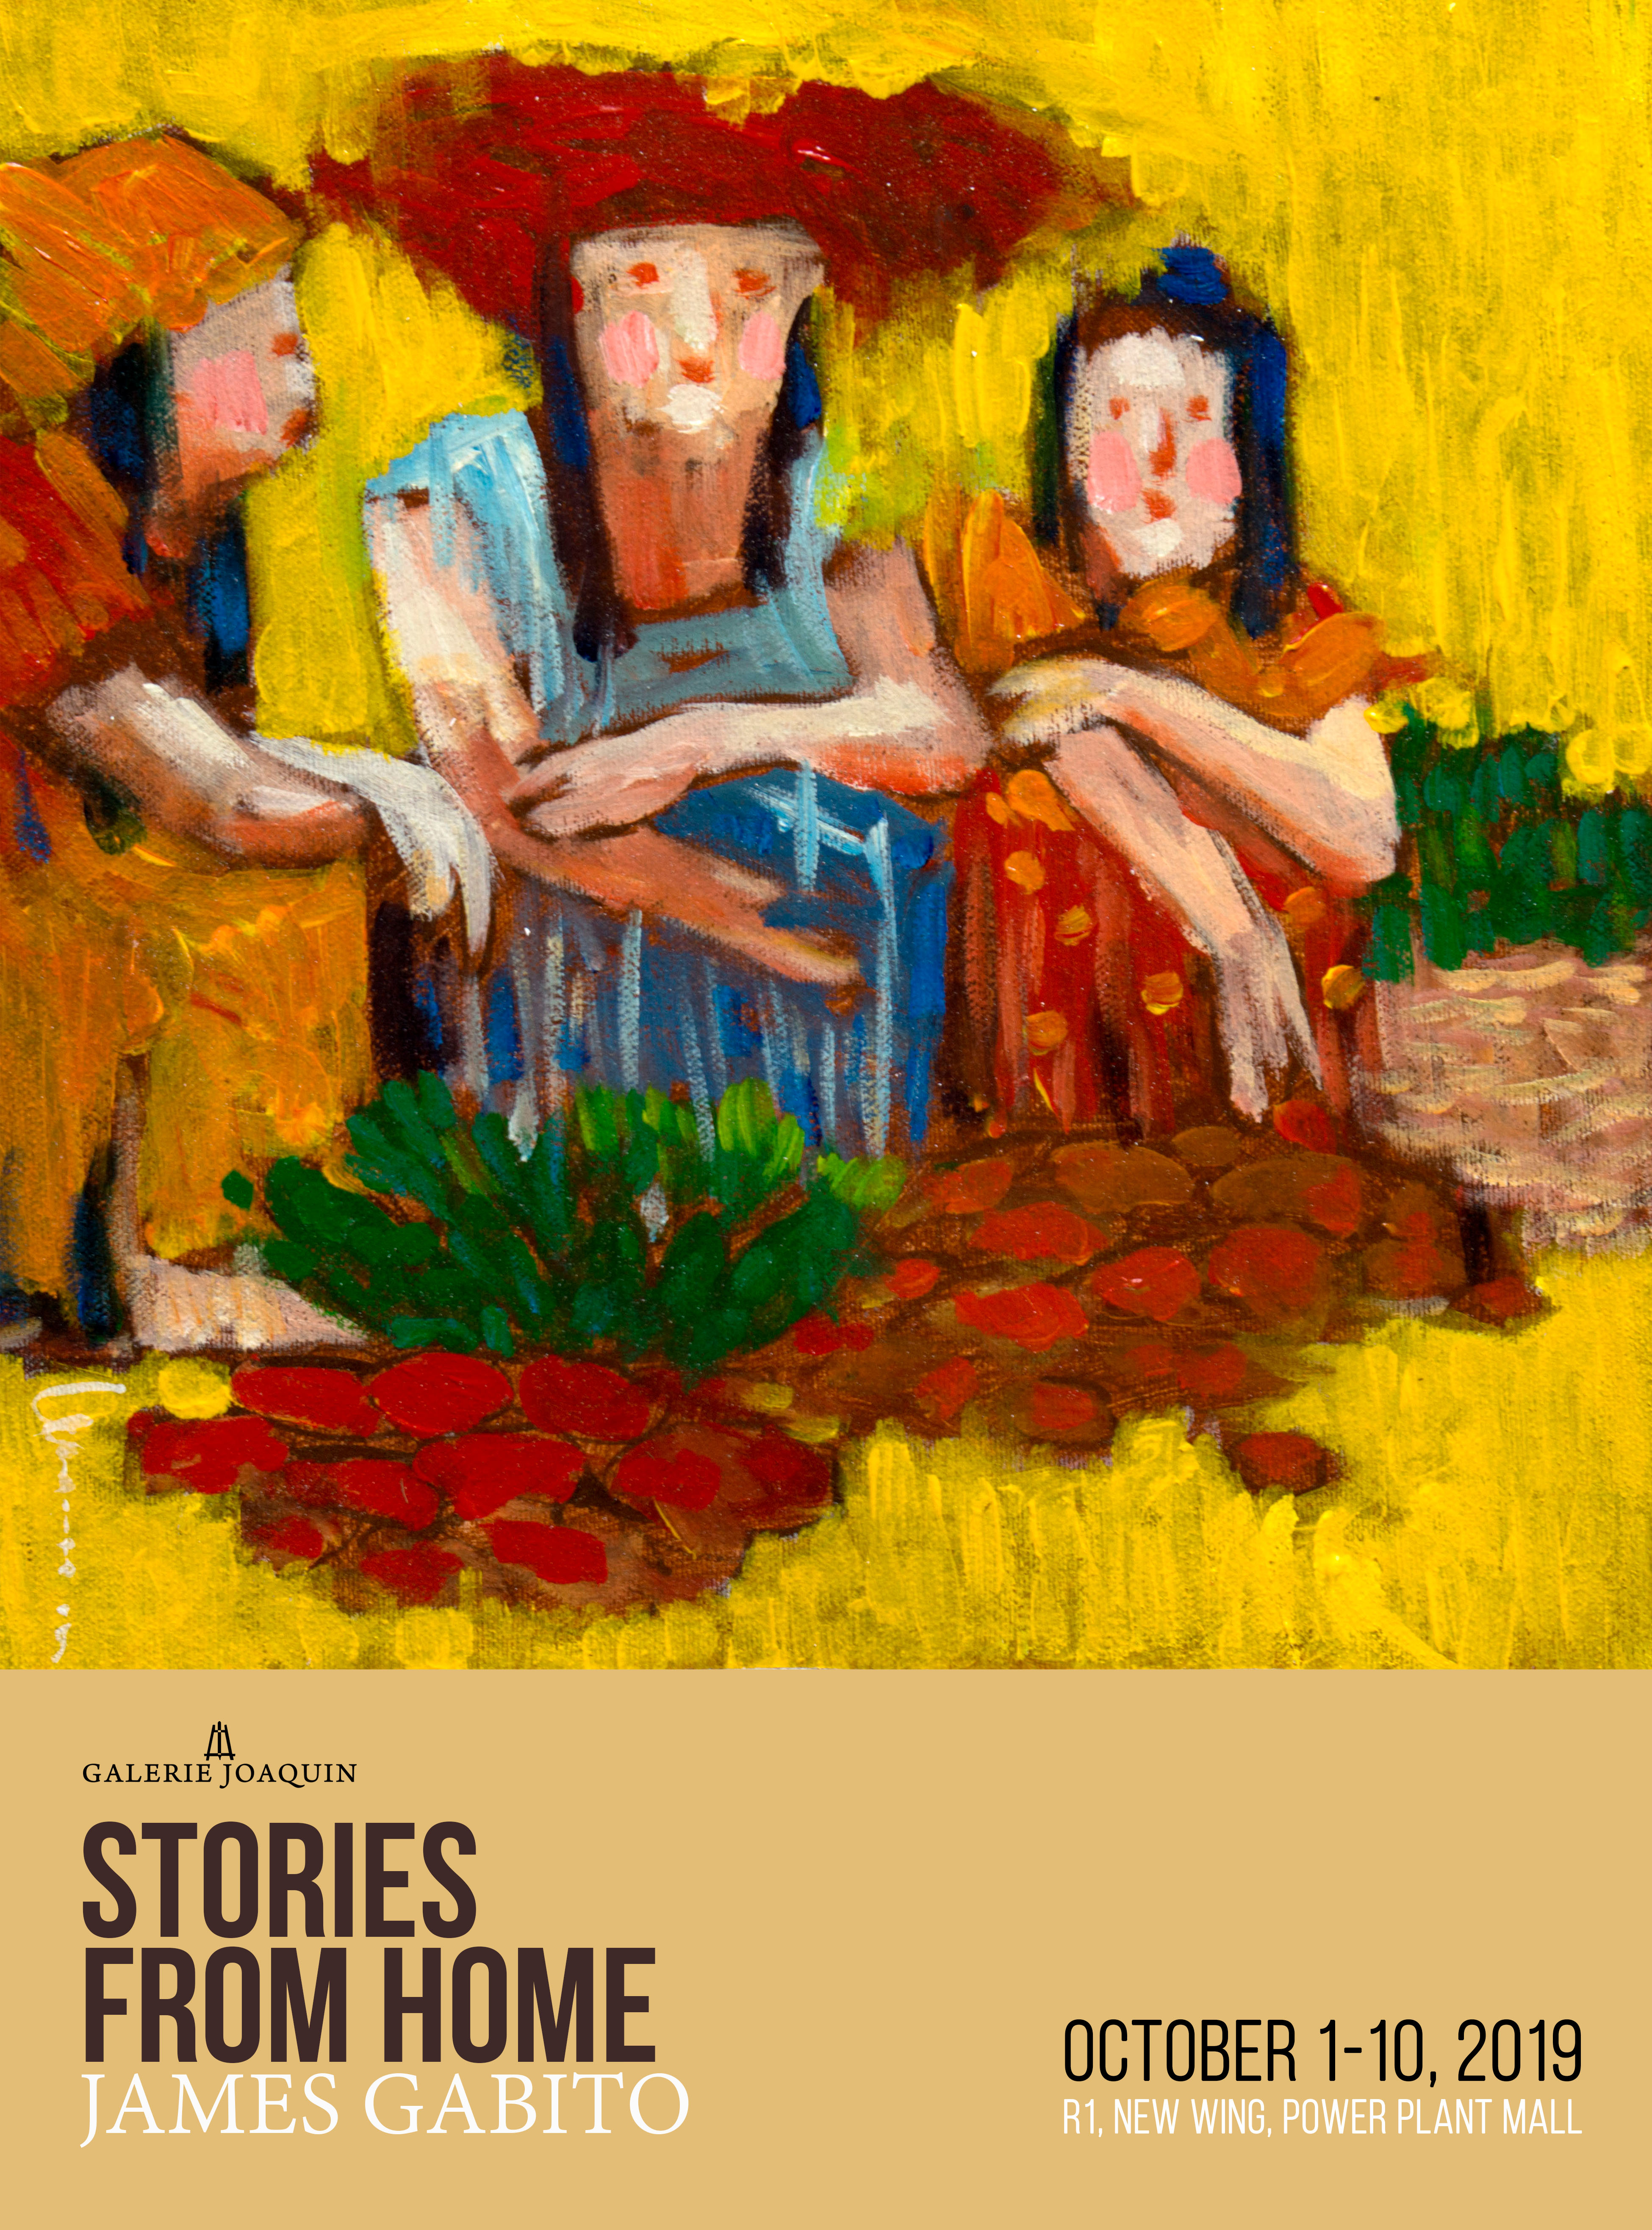 """""""STORIES FROM HOME"""" BY JAMES GABITO AT POWER PLANT MALL, NEW WING"""